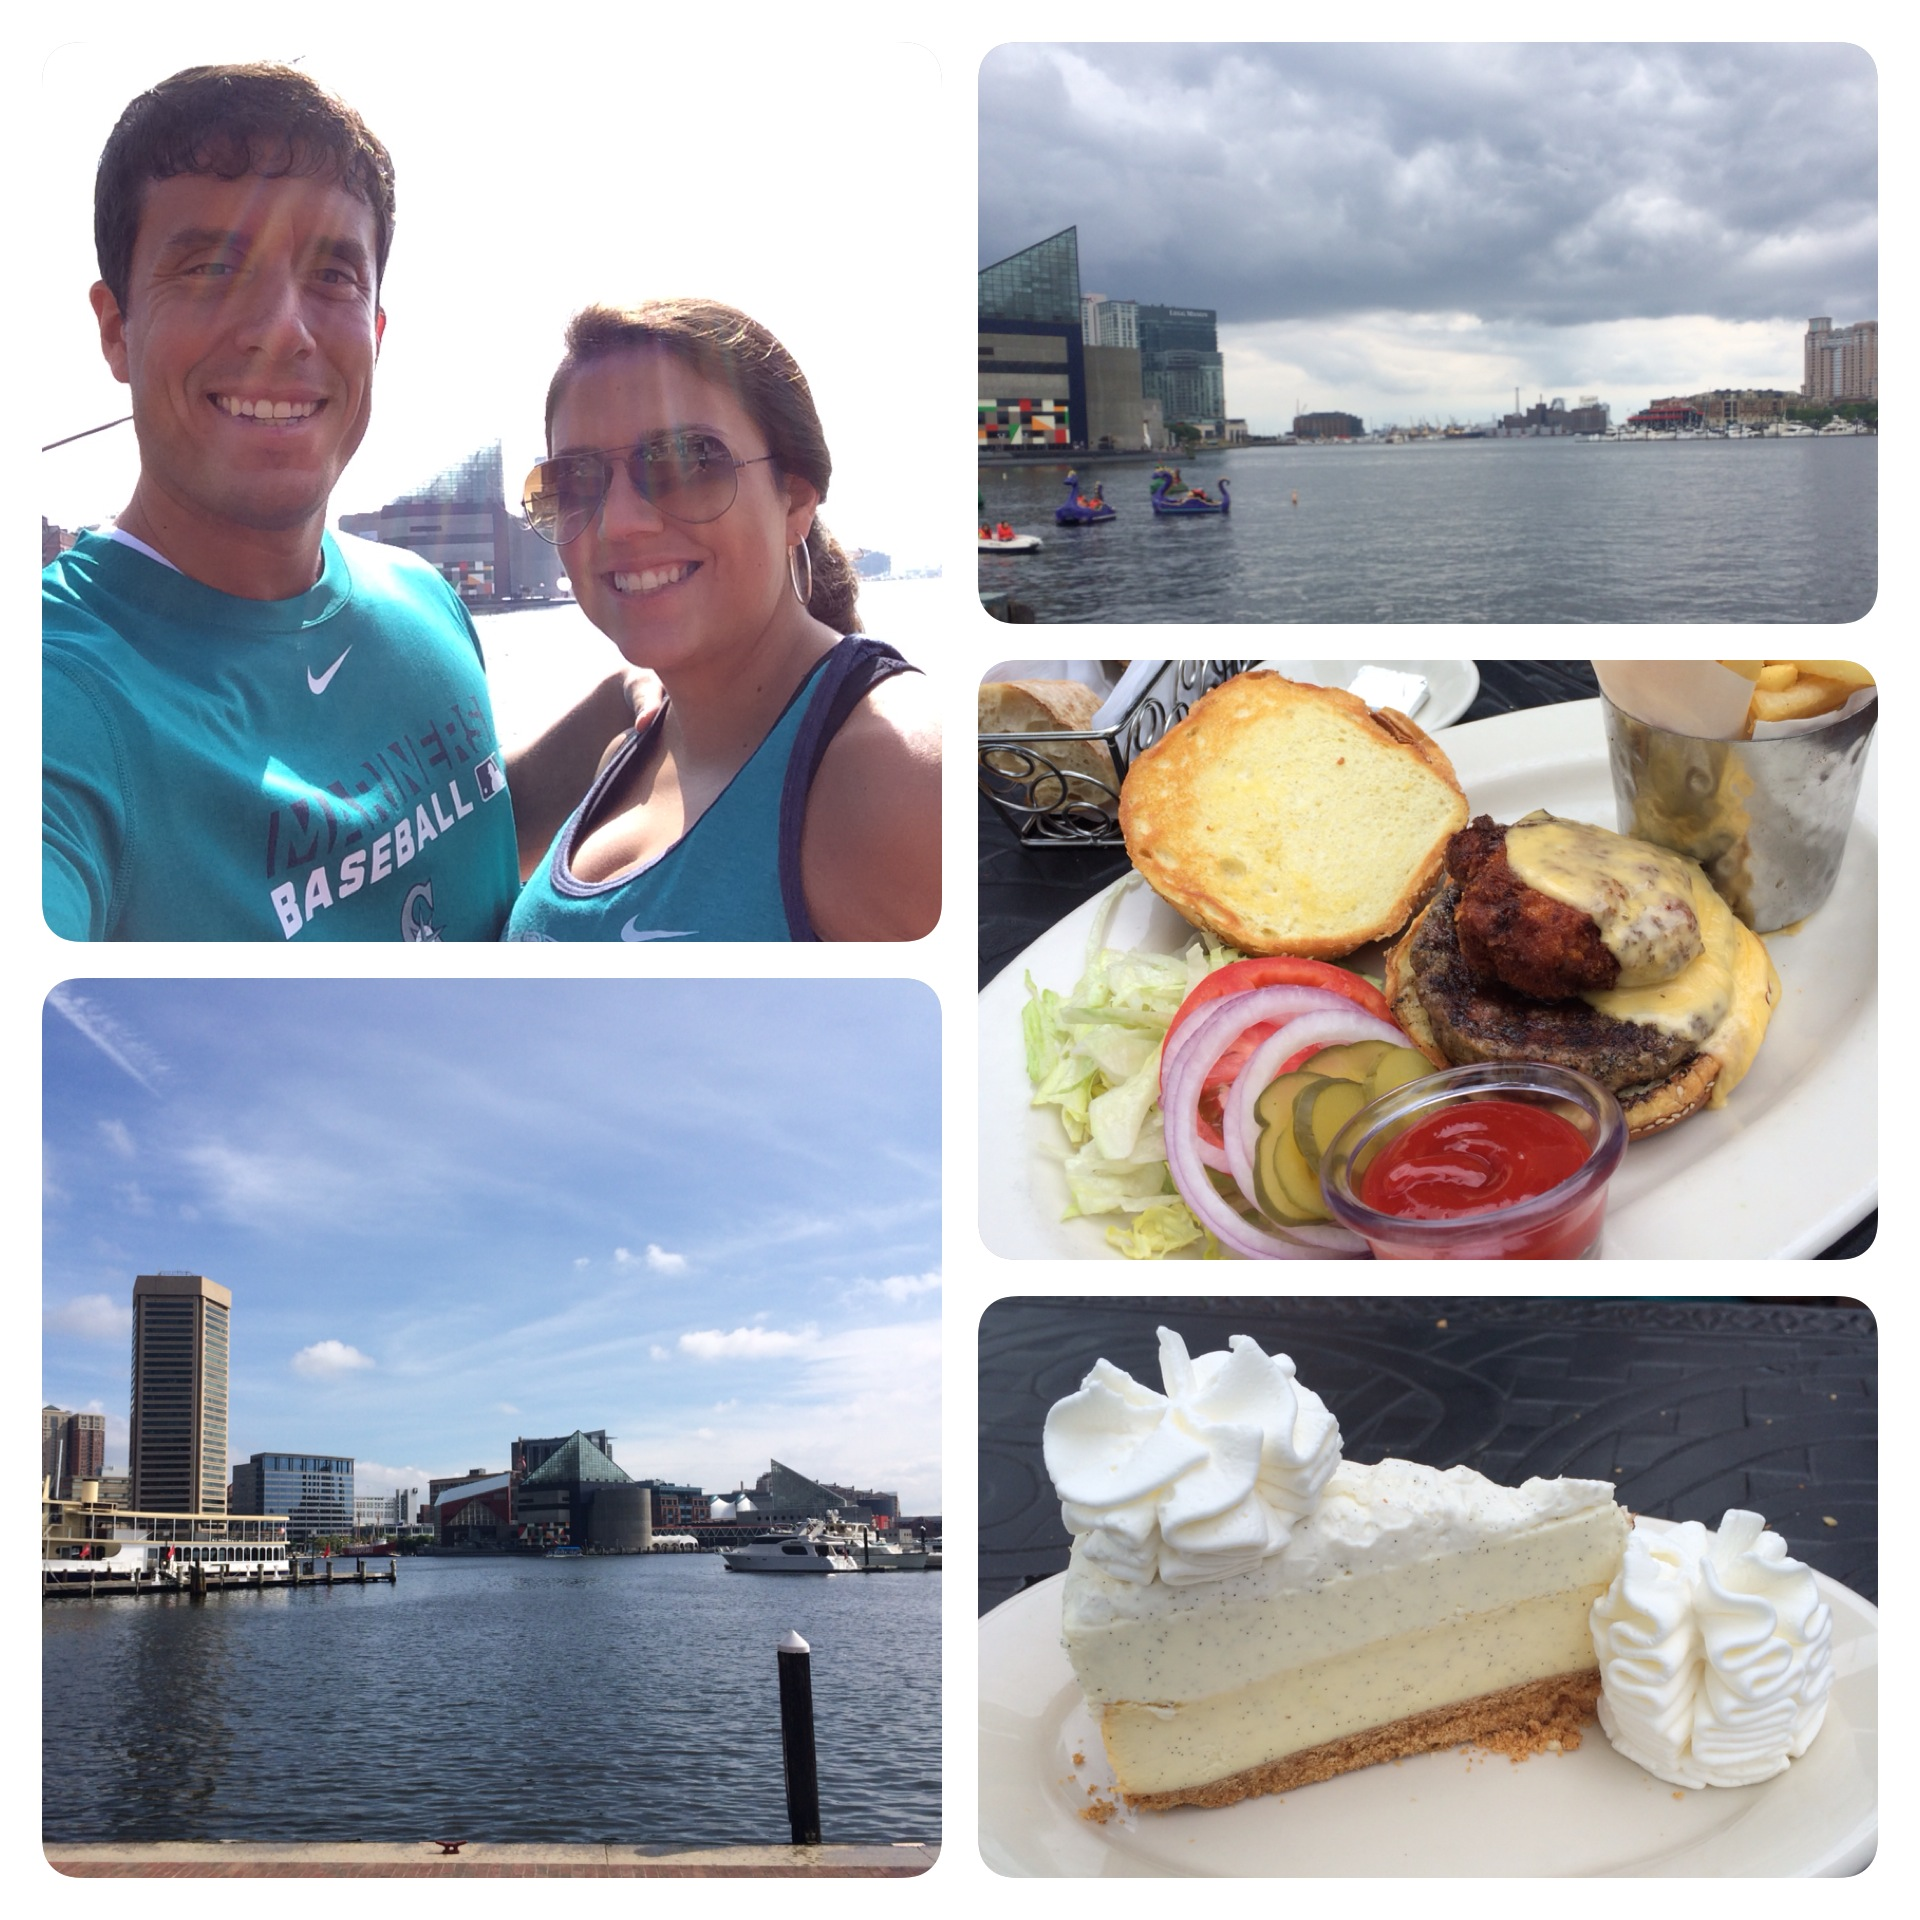 Here is a look at our view of Baltimore and our Cheesecake Factory lunch.